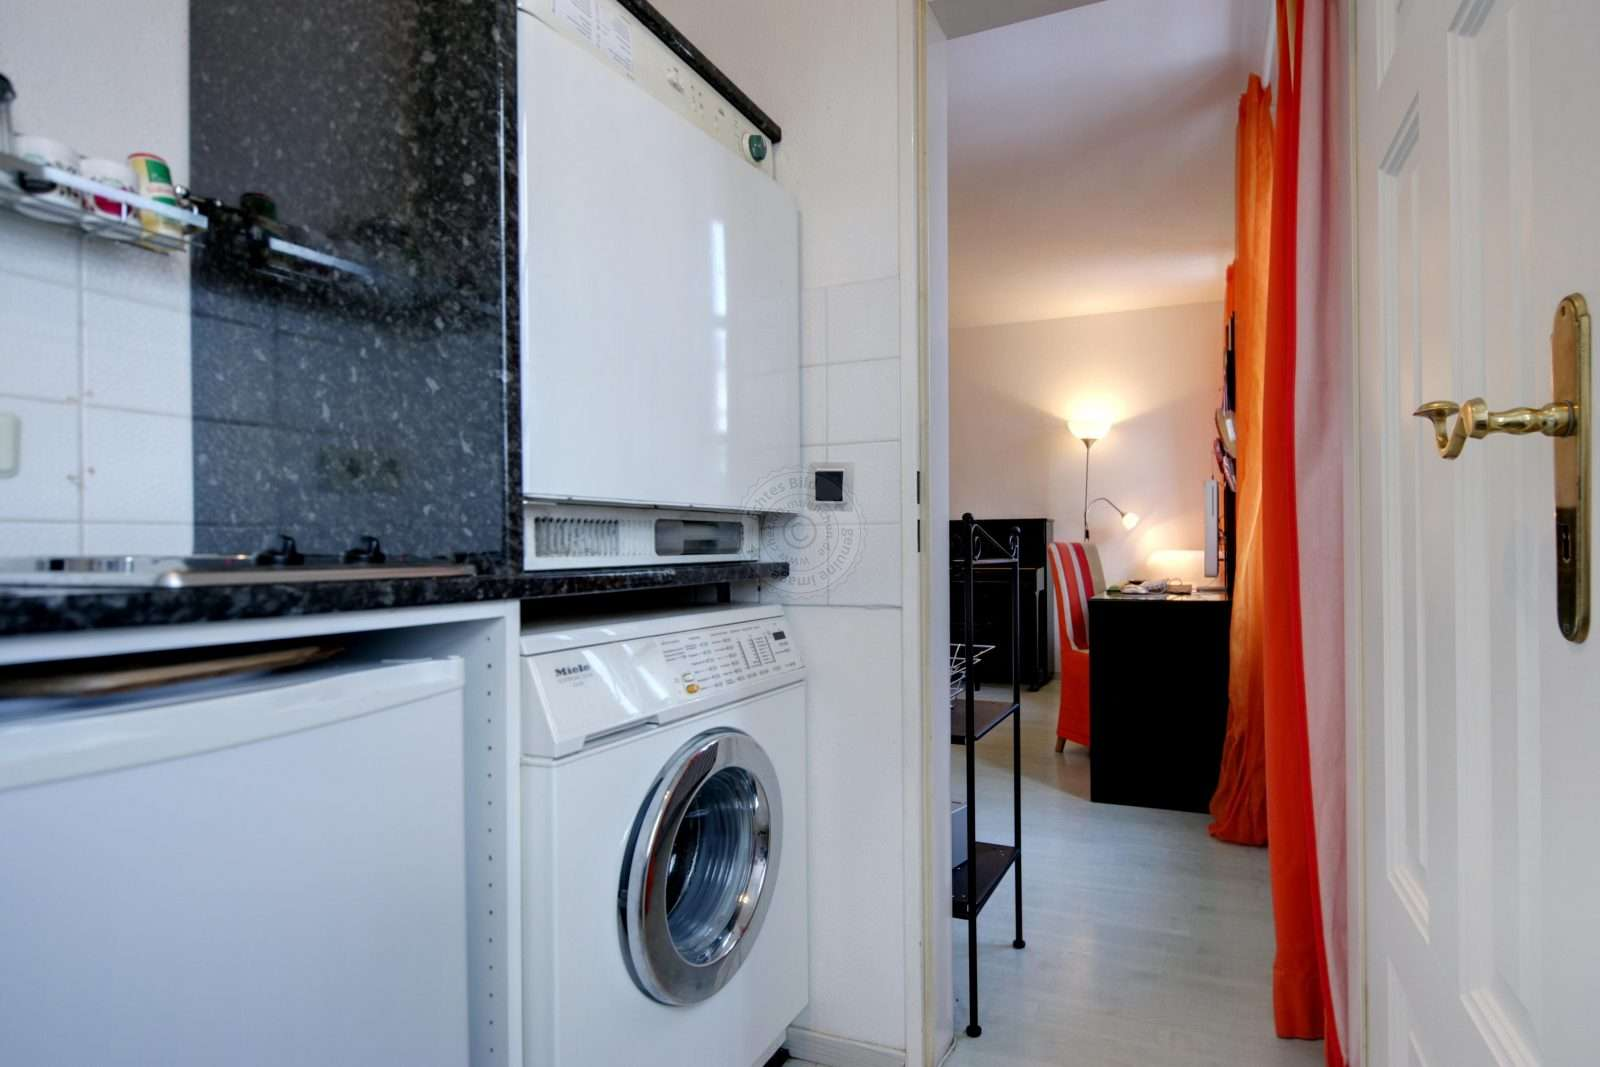 Washing is also possible in the apartment